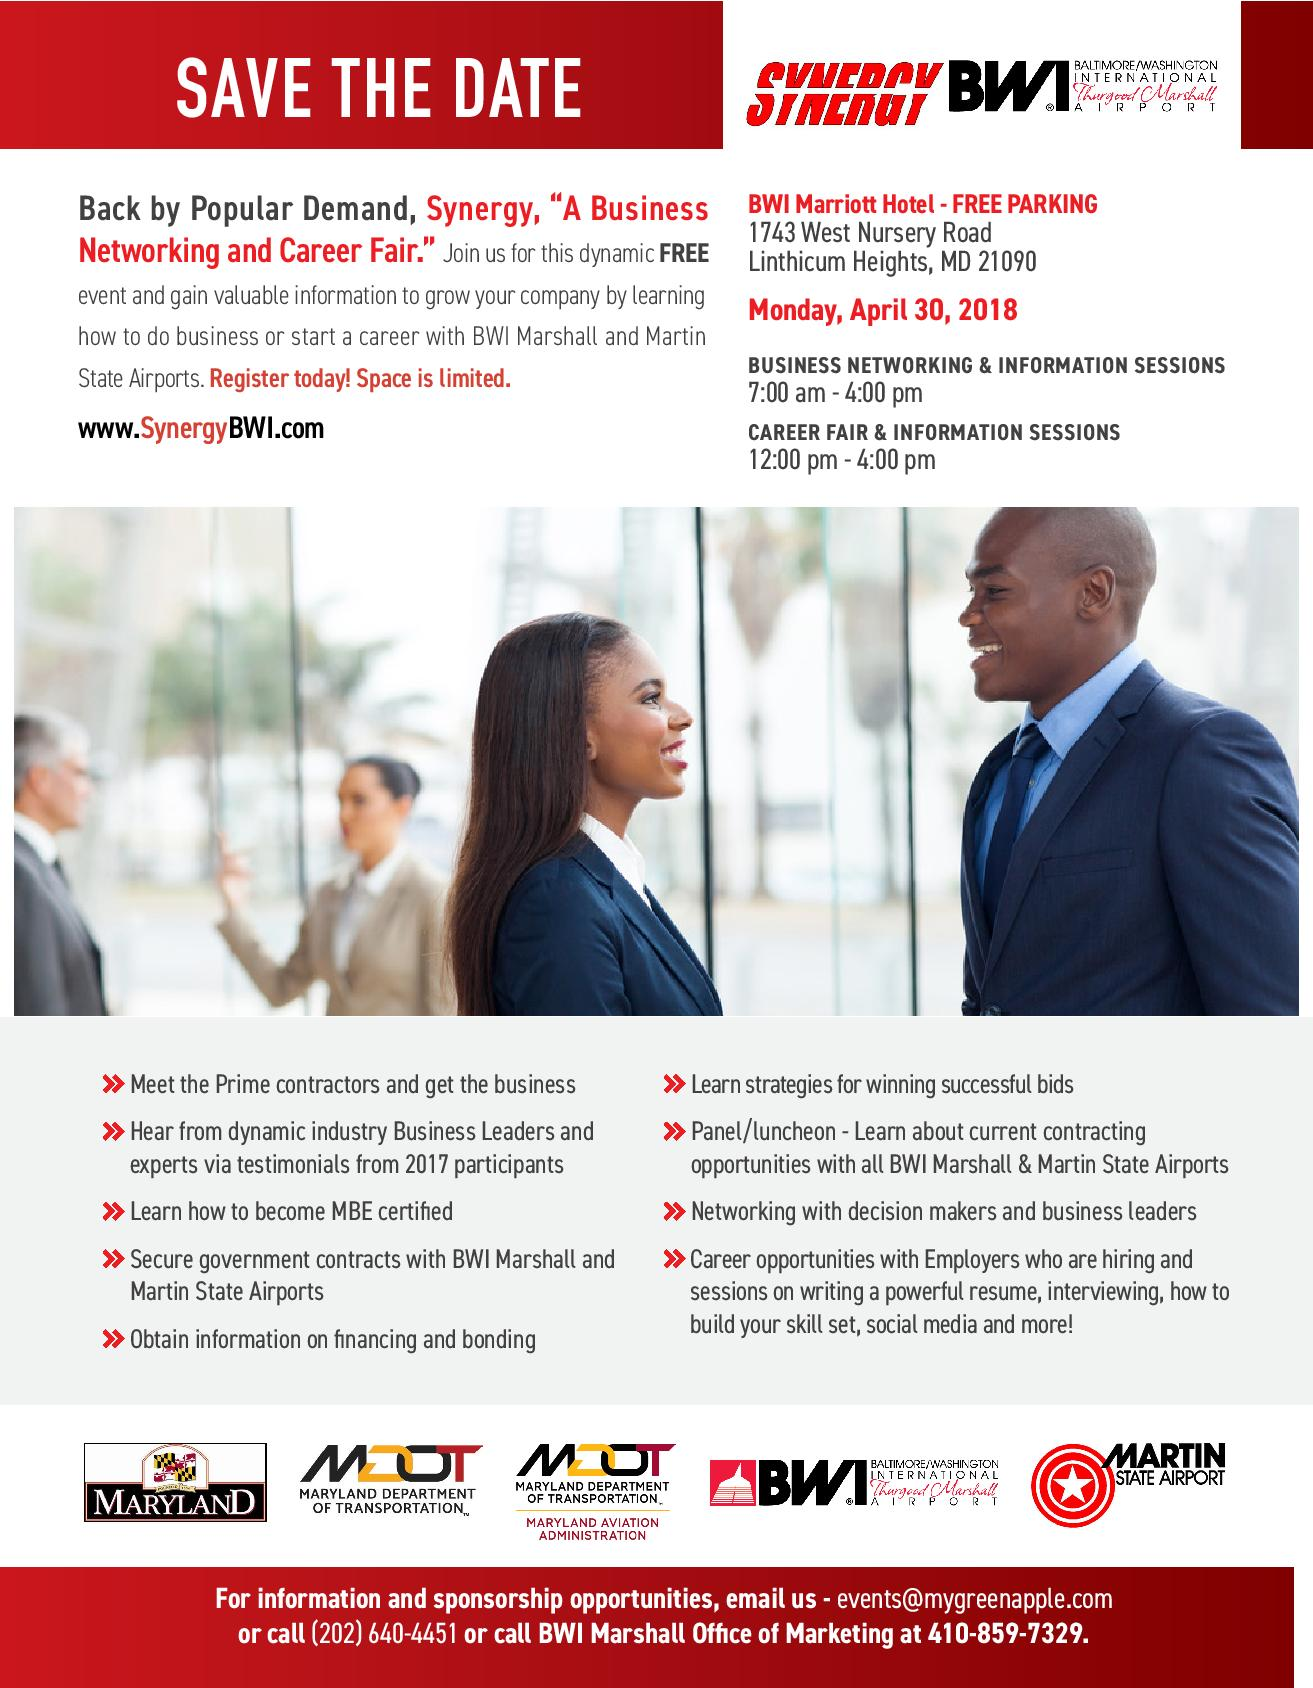 Synergy+Business+Networking+Career+Fair+Save+the+Date+Flier.apr2018-page-001.jpg